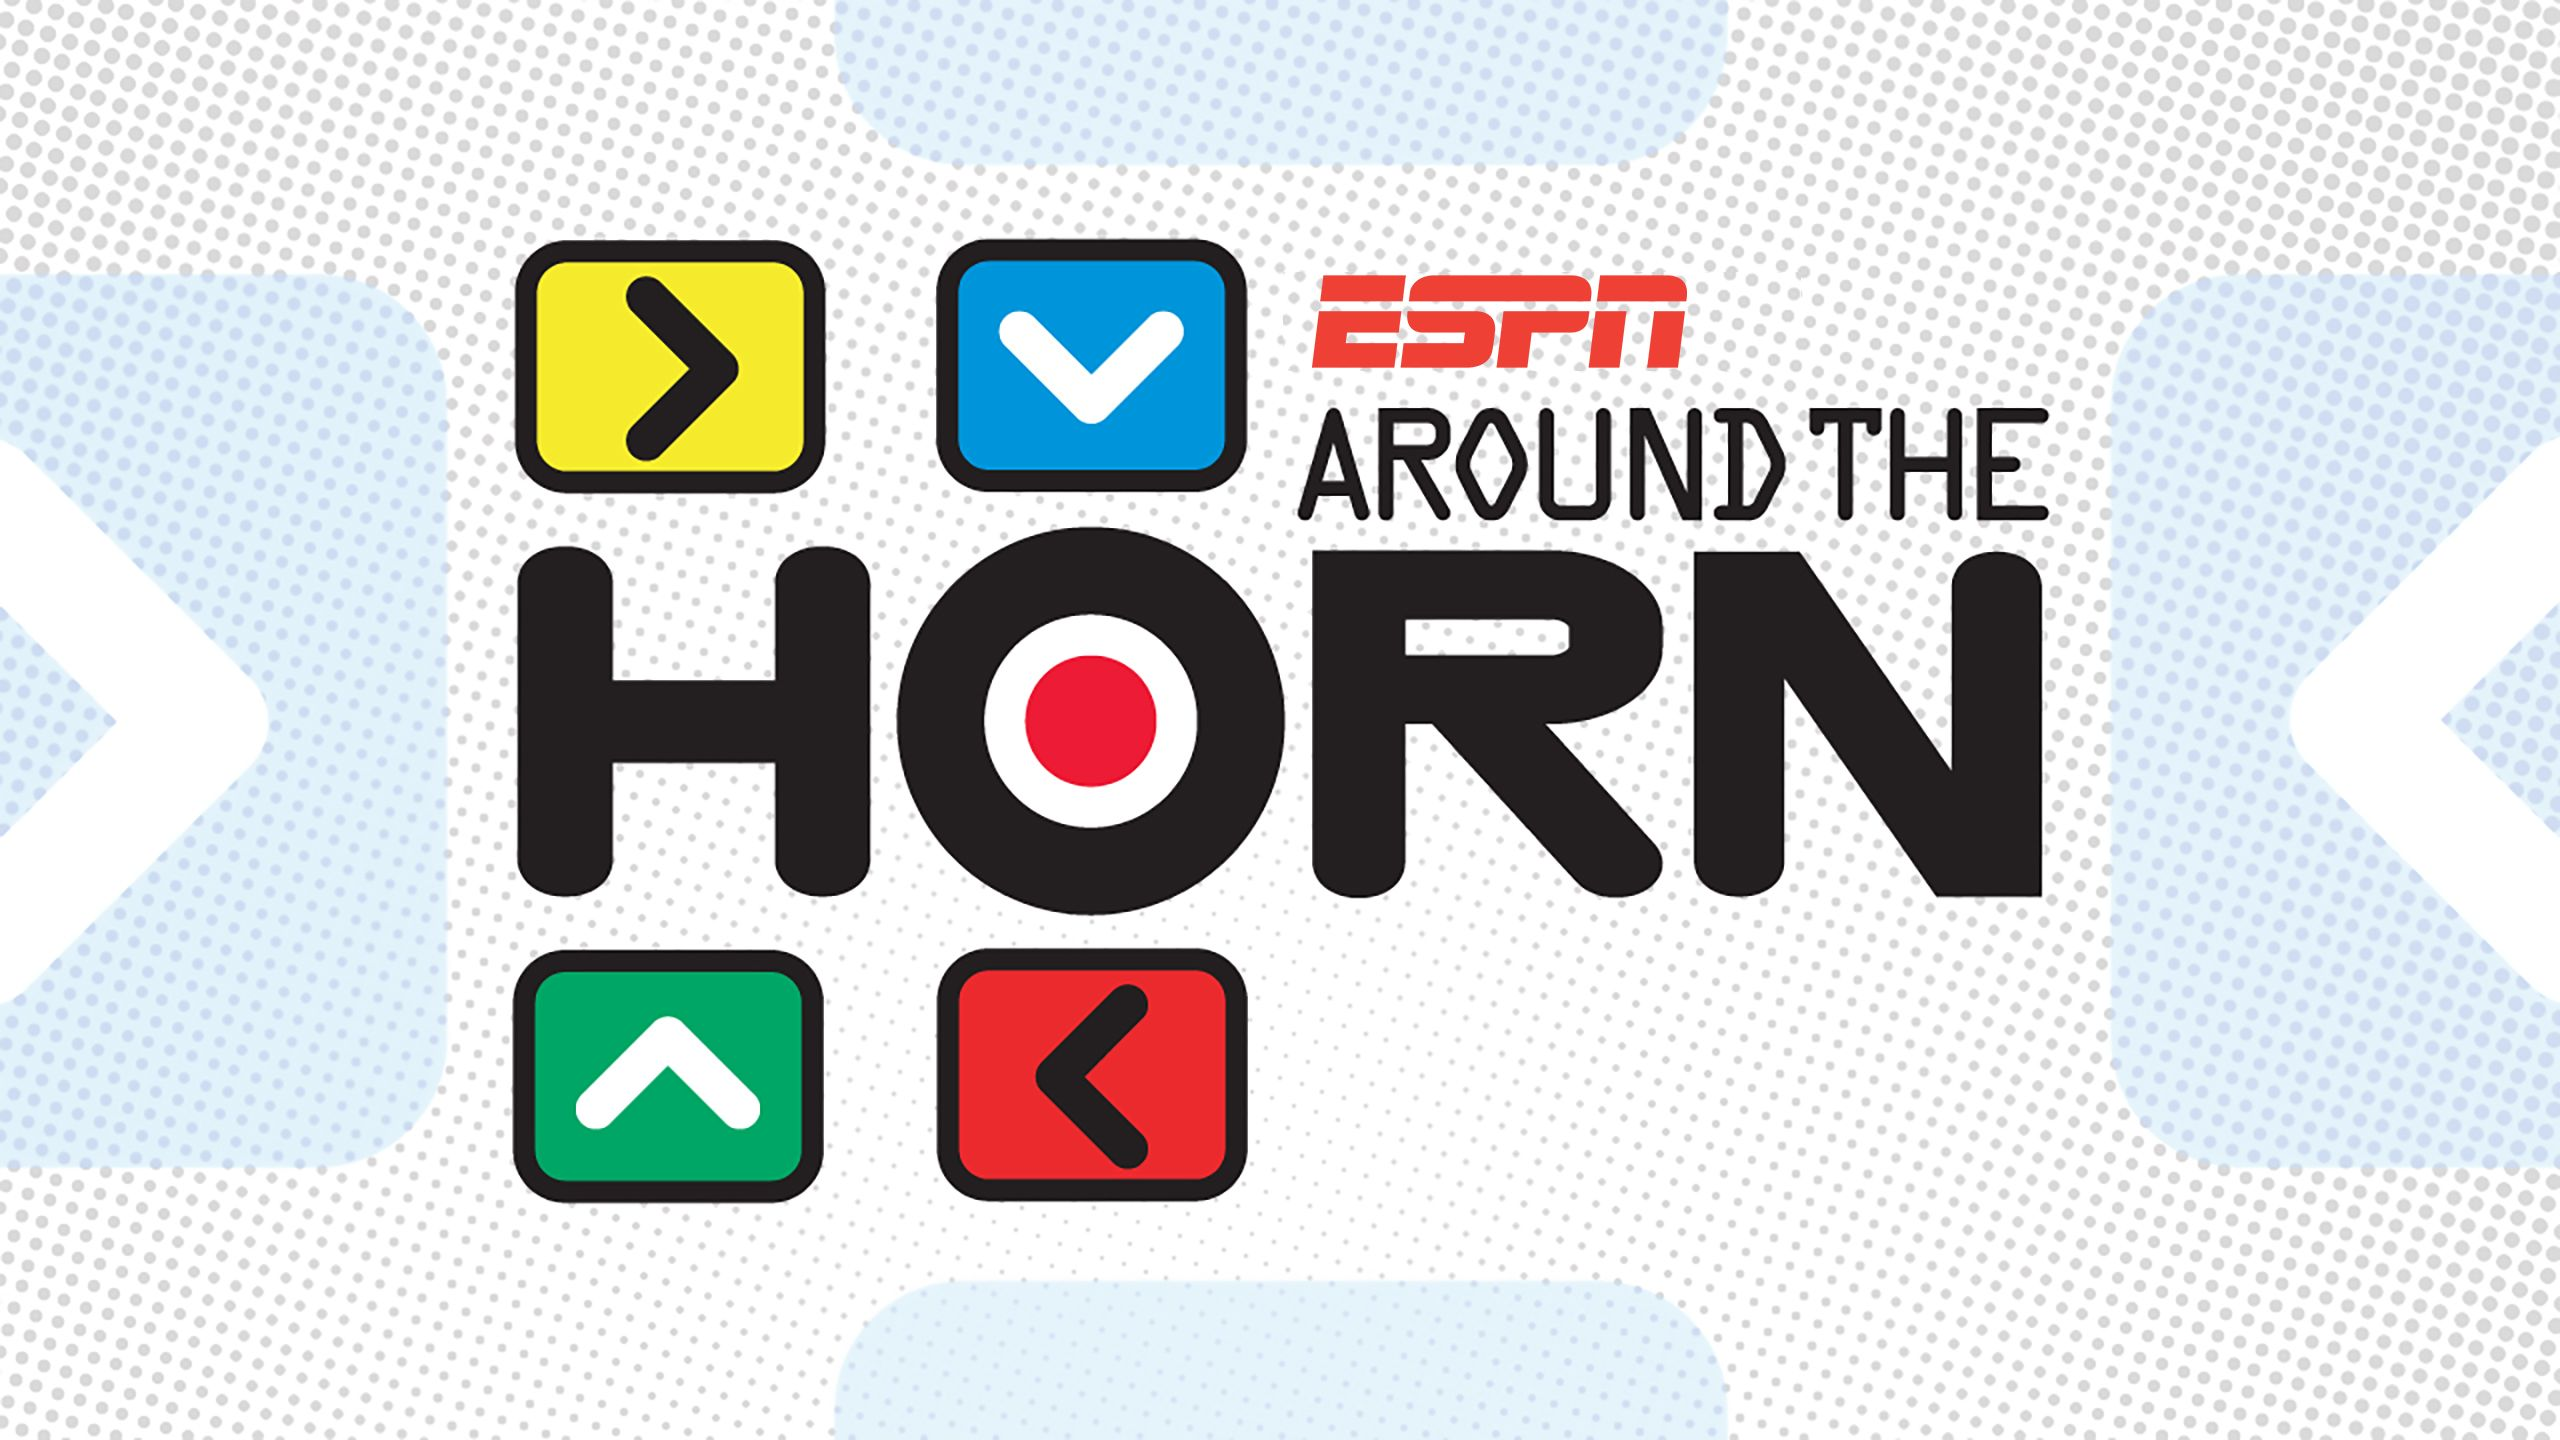 Fri, 4/20 - Around The Horn